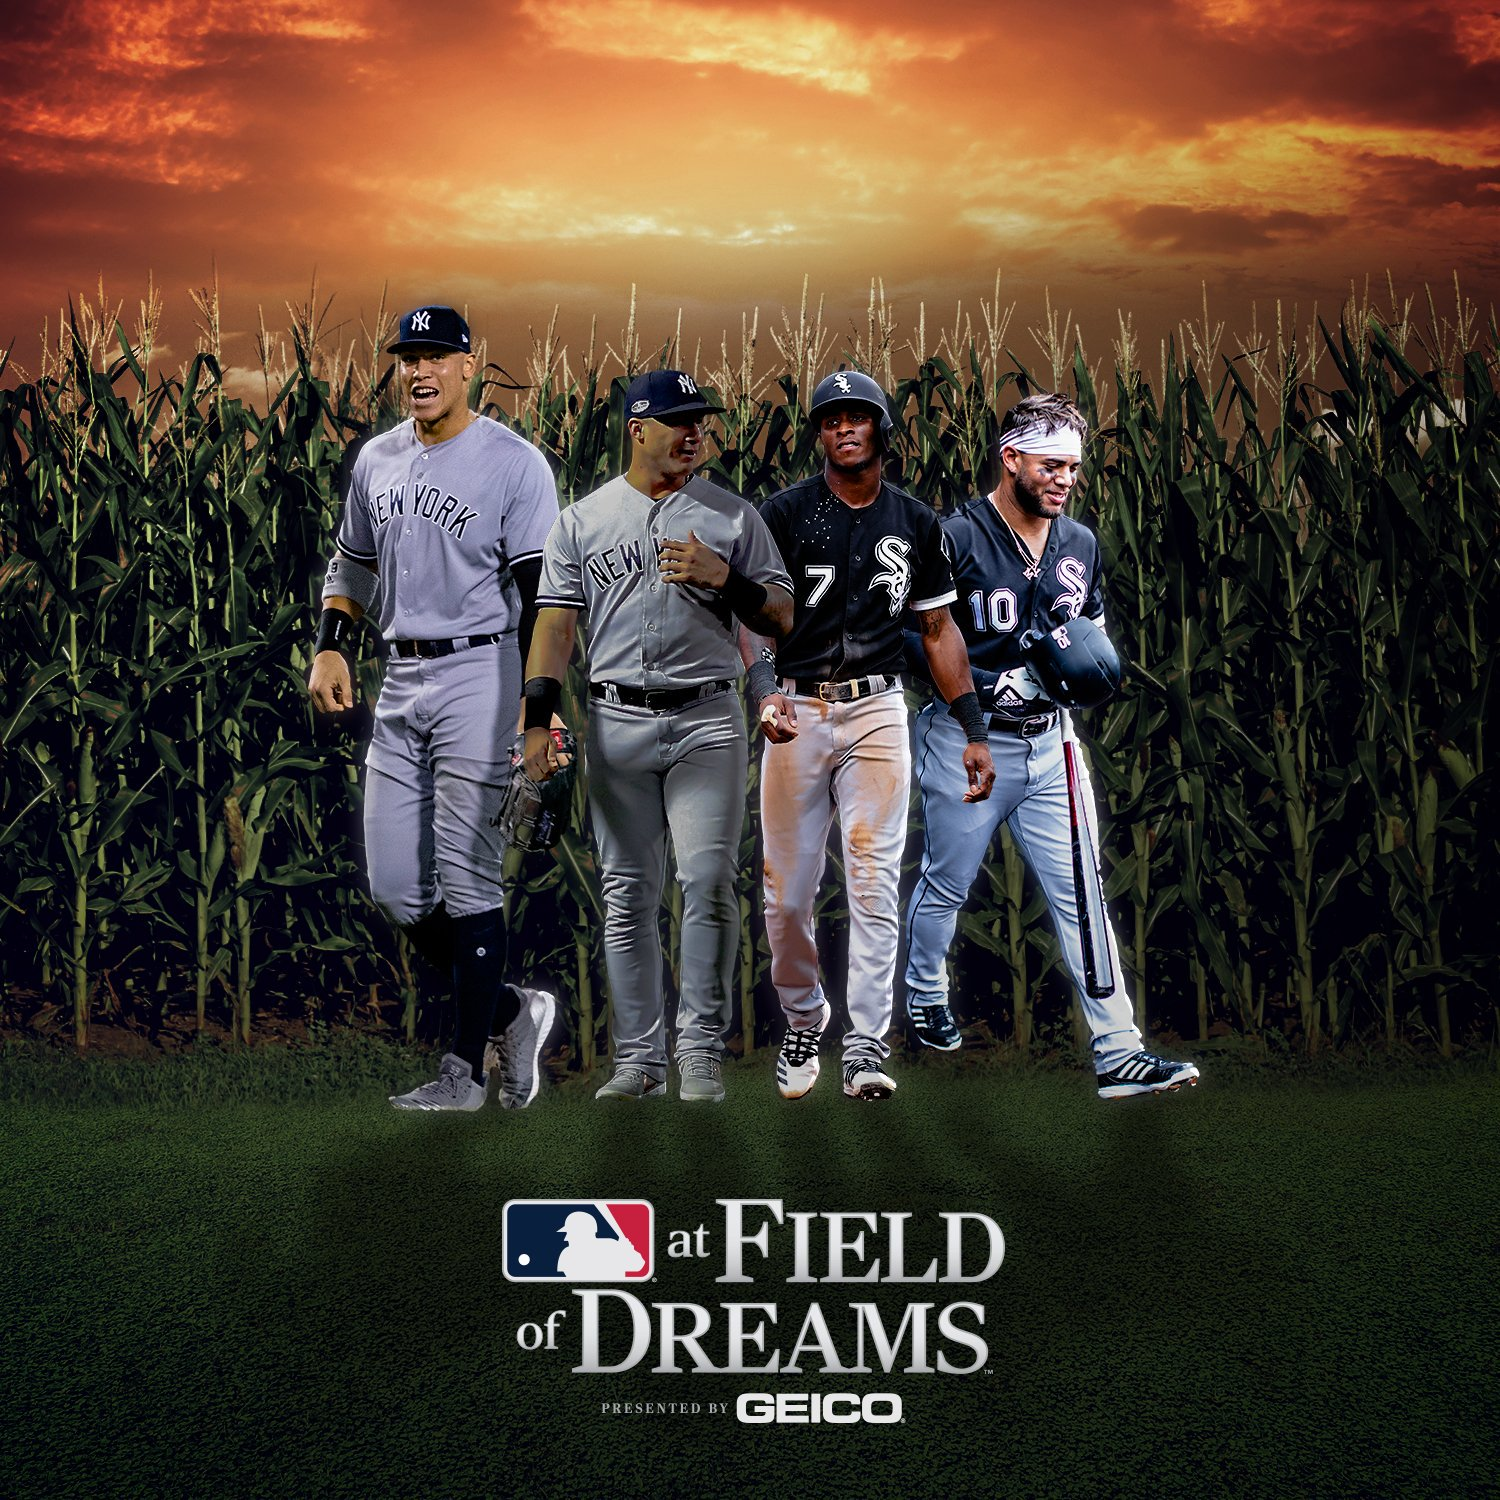 Field of Dreams MLB Chicago White Sox New York Yankees